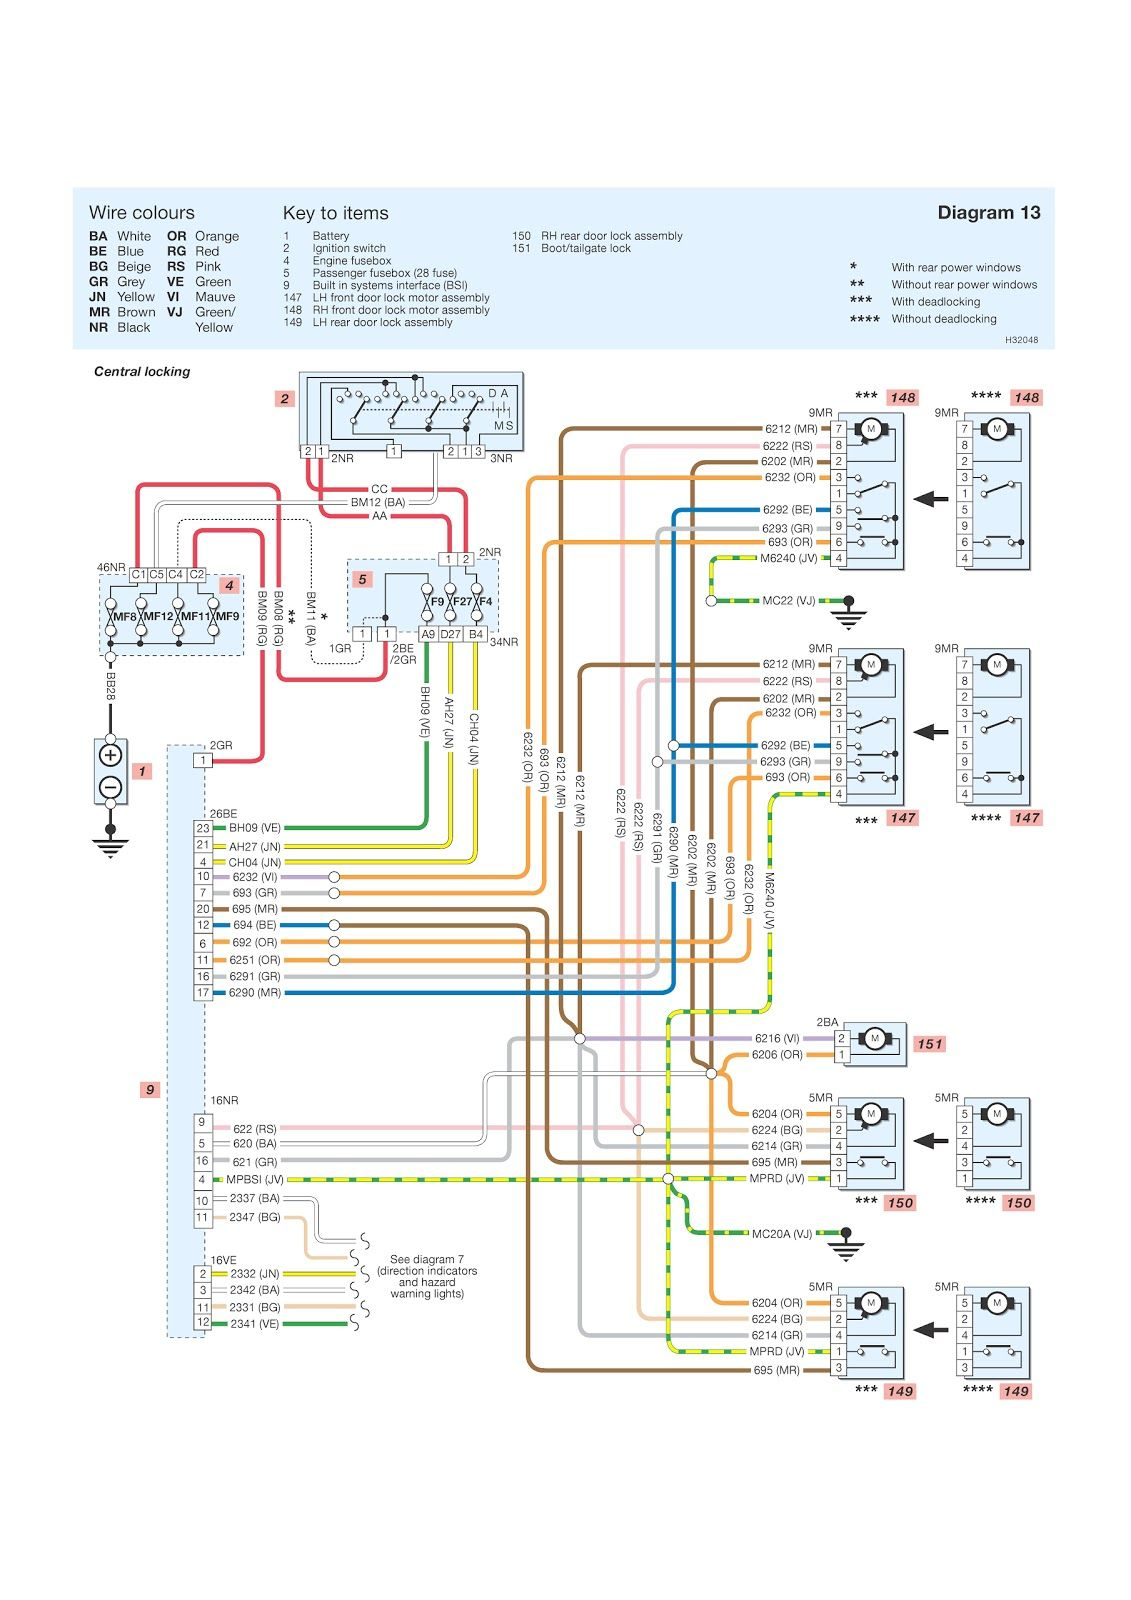 peugeot 307 wiring diagram heat in 2019 diagram, peugeot peugeot 307 stereo wiring harness peugeot 308 wiring diagram download